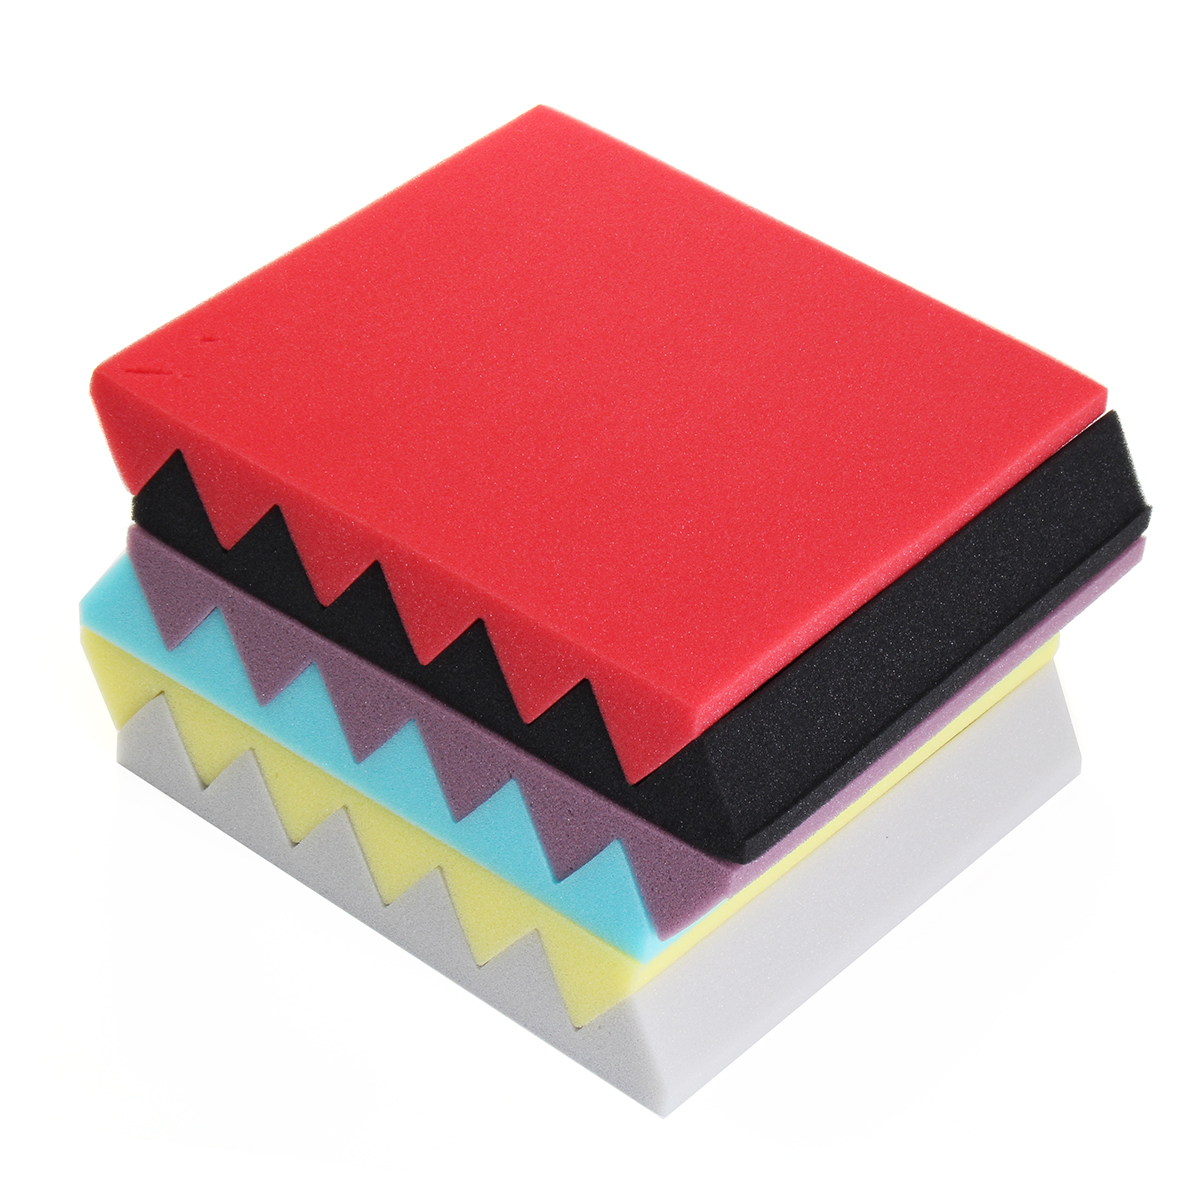 Wedge Acoustic Studio studioequipment Sponge Soundproofing Foam Wall Tiles 12''x12''x2''